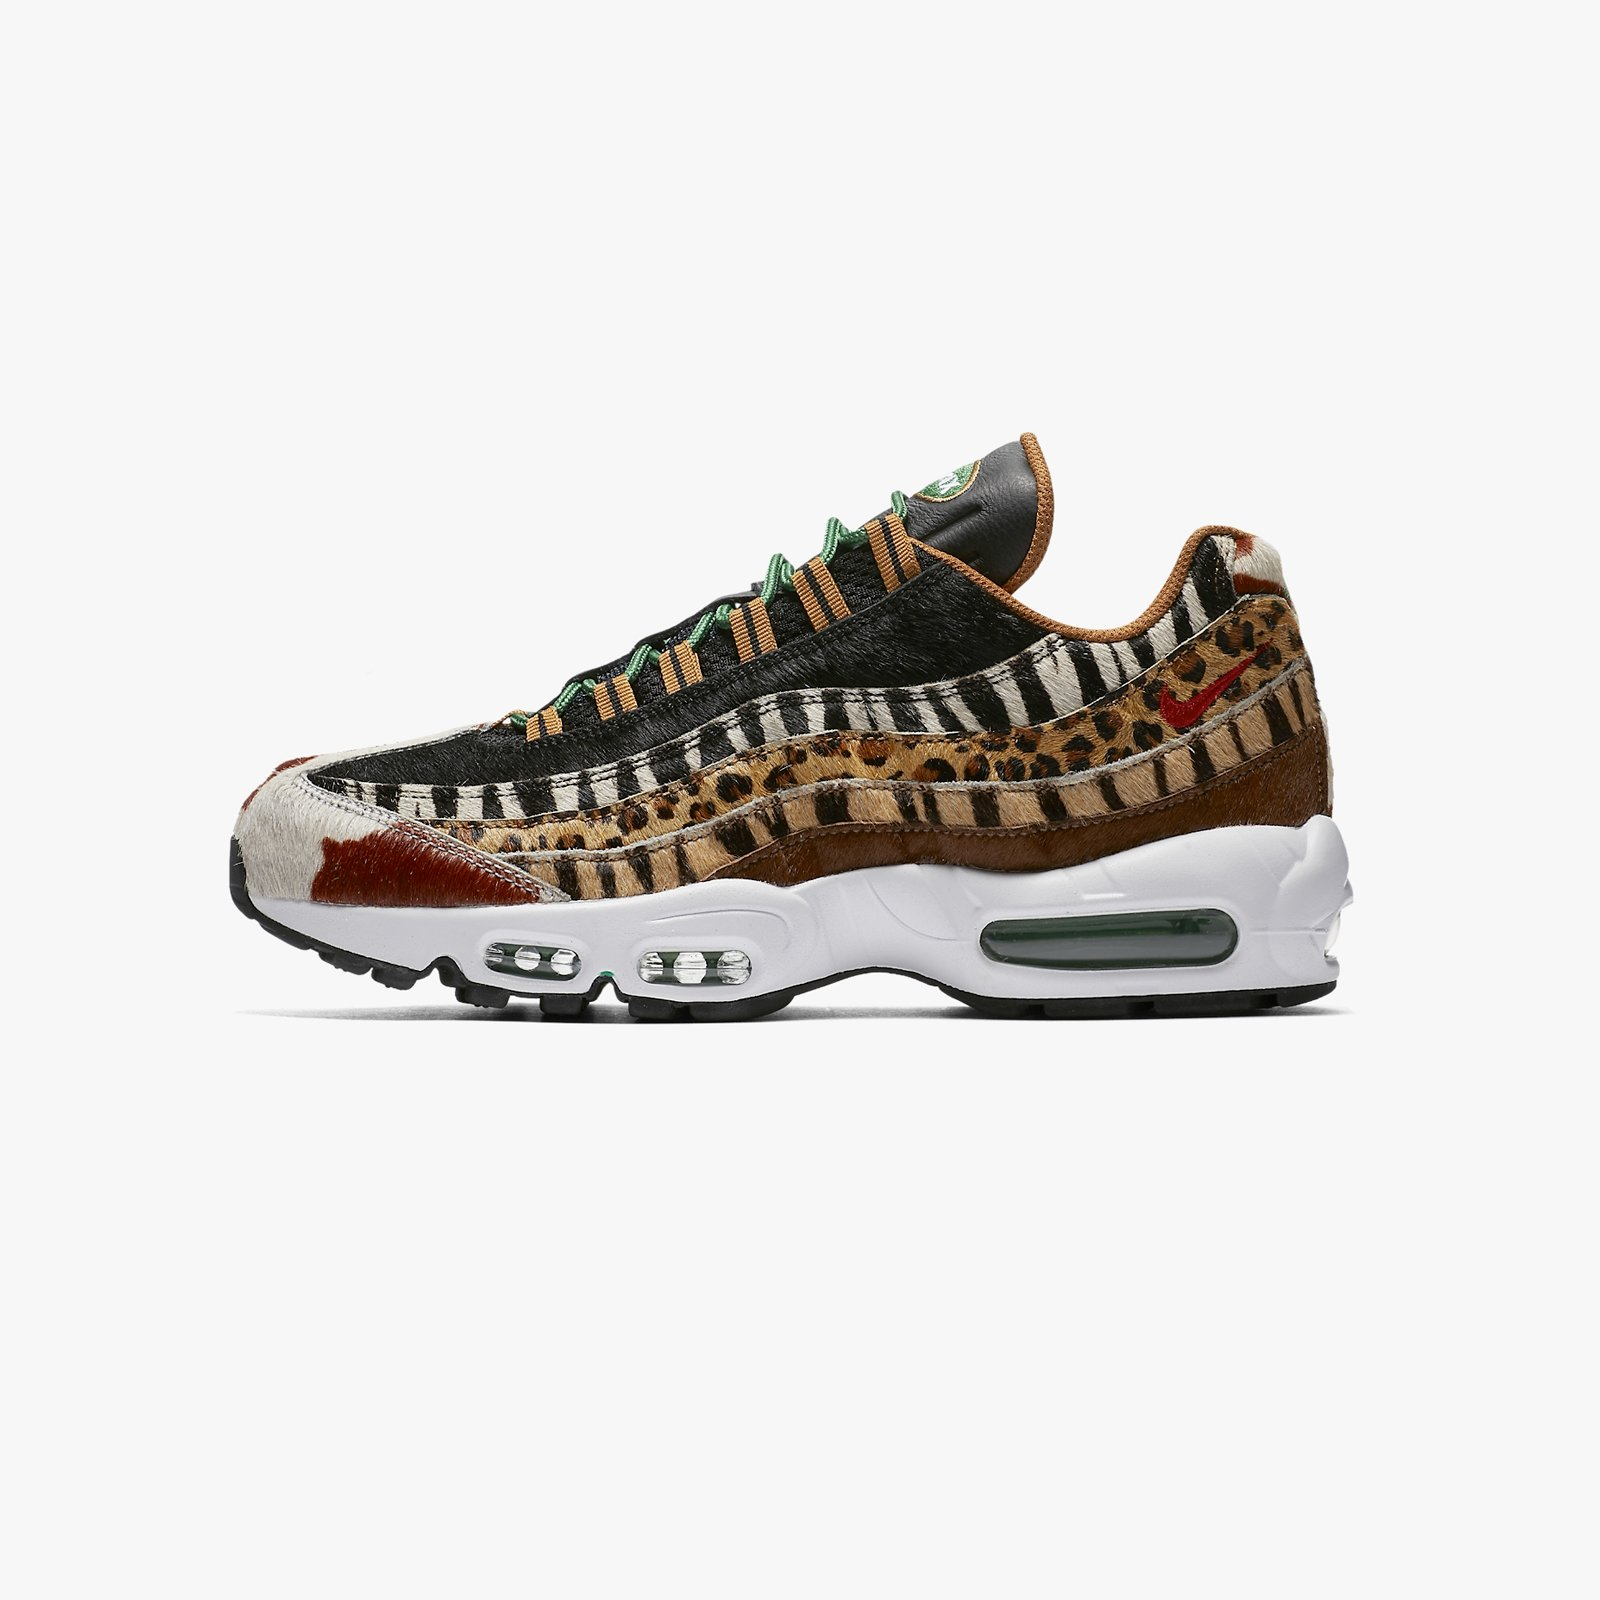 Nike Air Max 95 DLX Animal Pack 2.0 - Aq0929-200 - Sneakersnstuff ... 5042bc9db